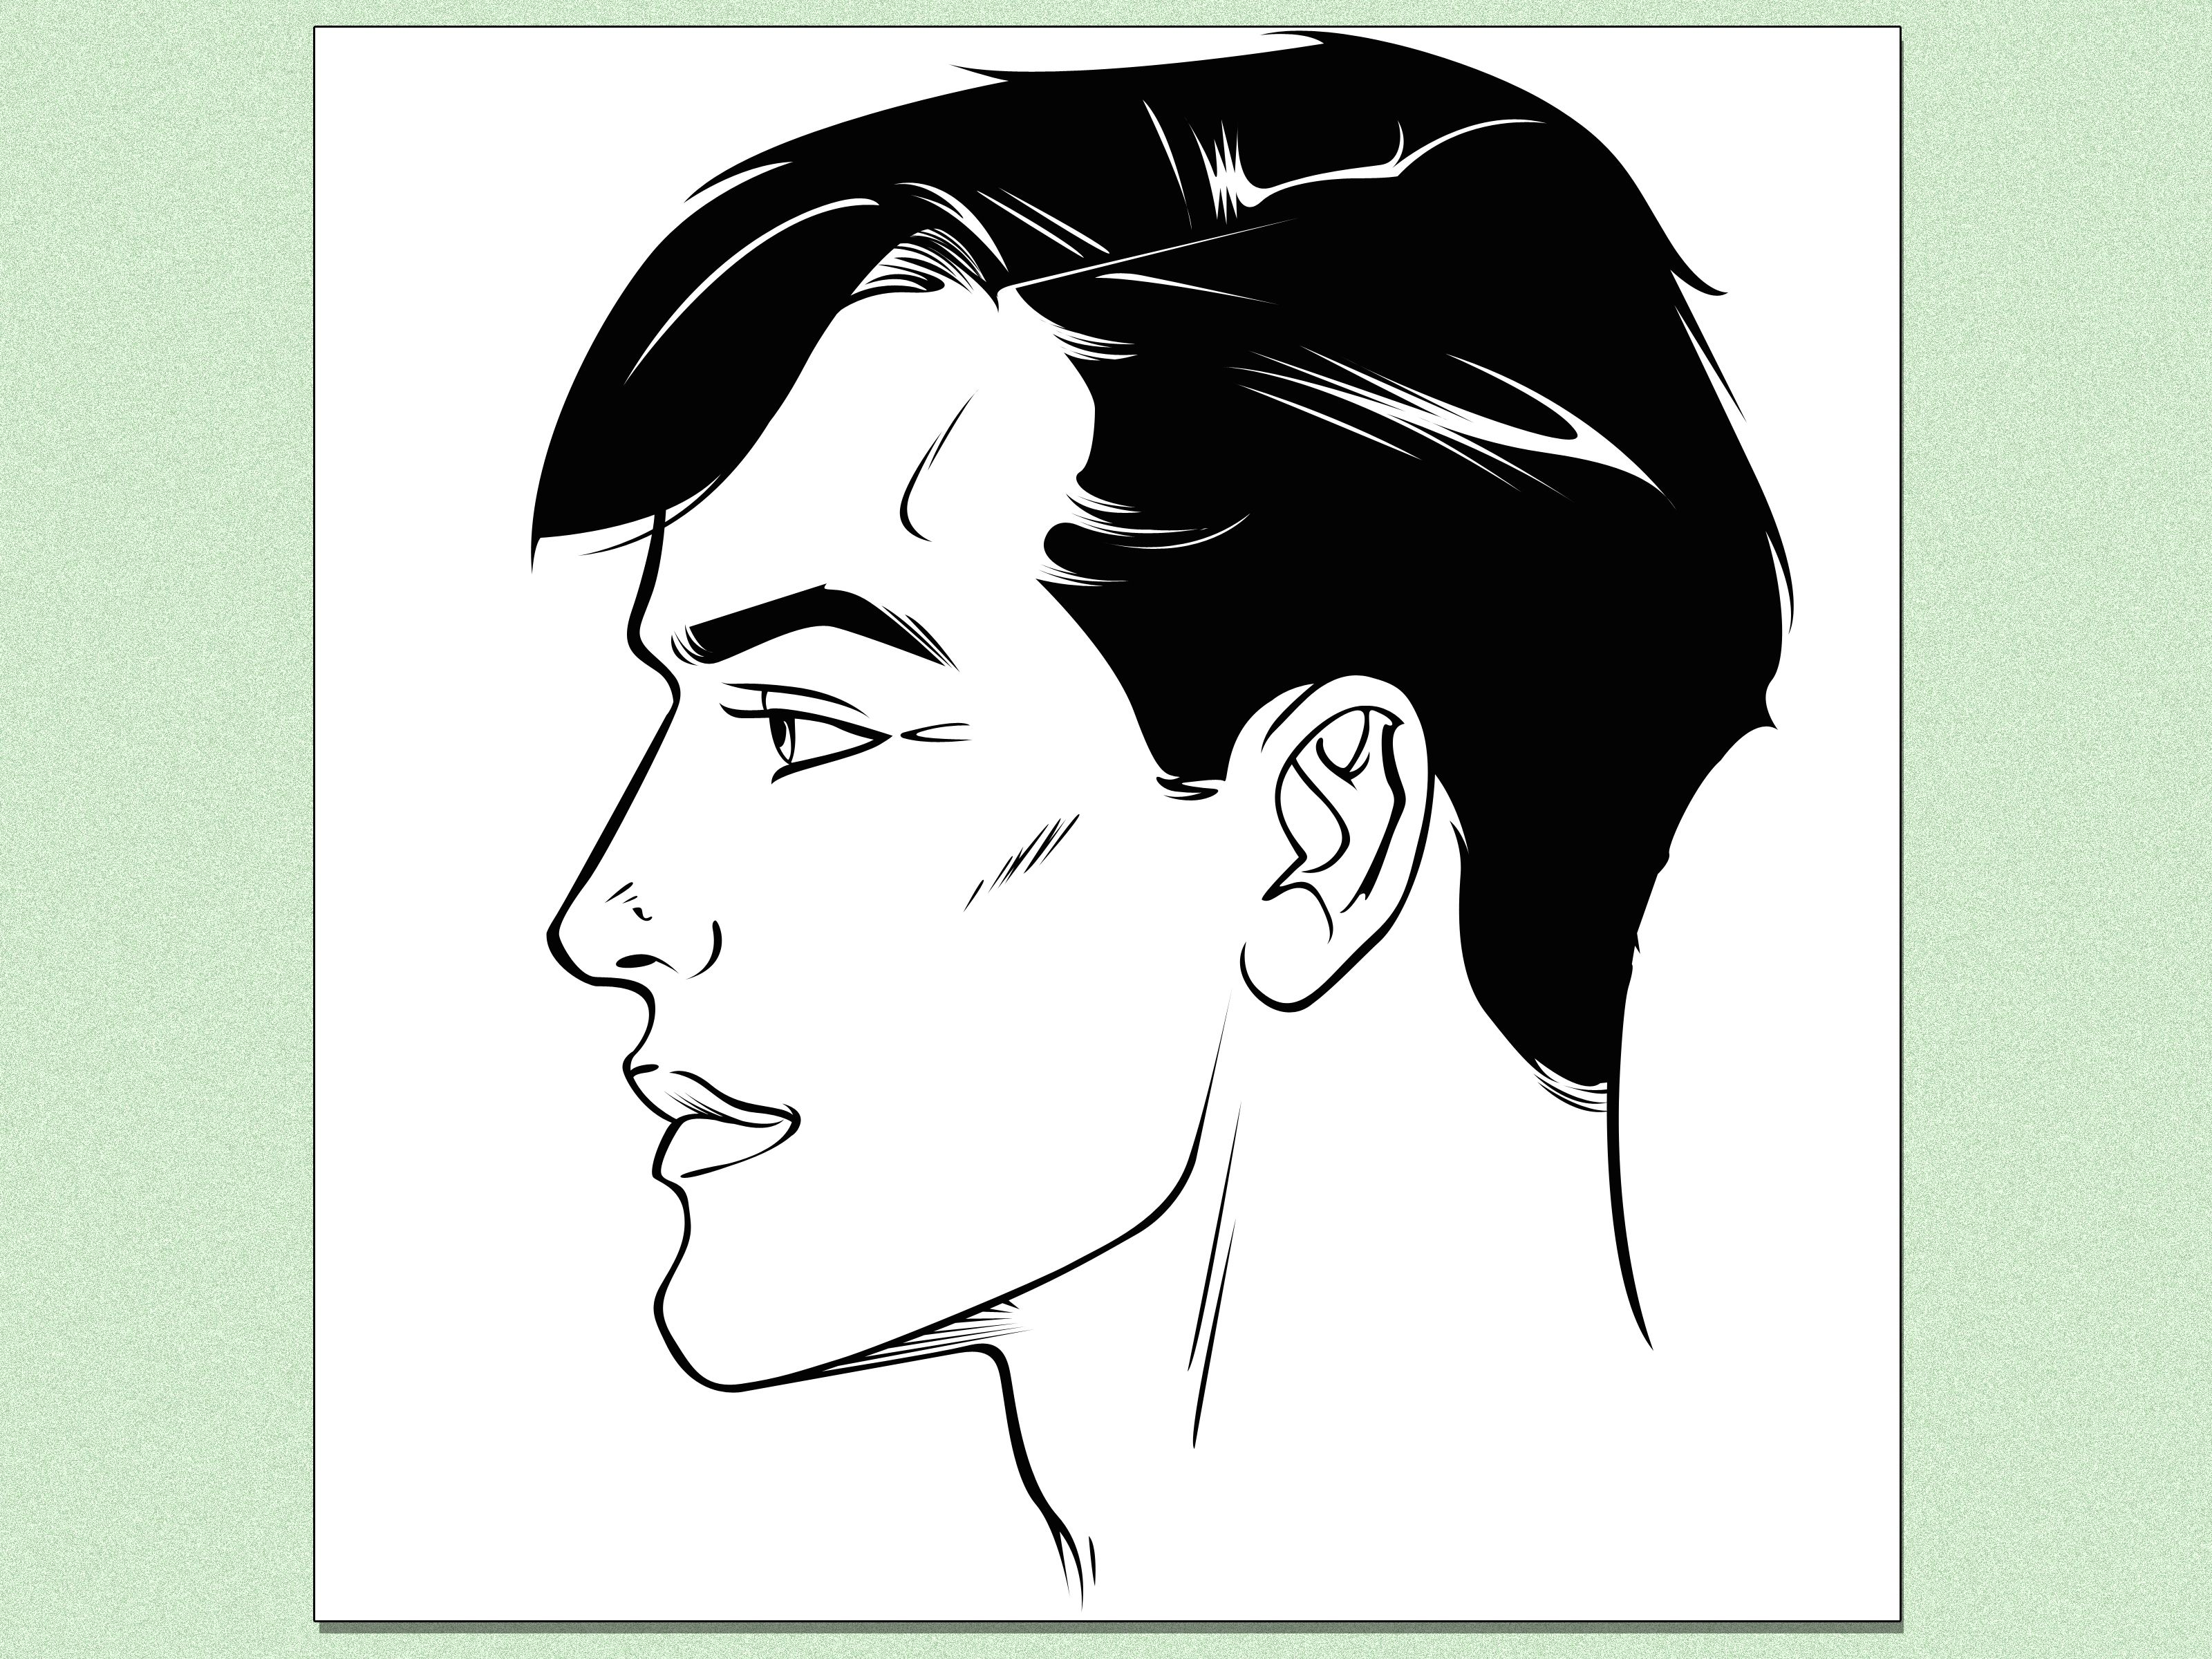 3200x2400 How To Draw A Head Side Profile Draw Face Profiles Step 6.jpg